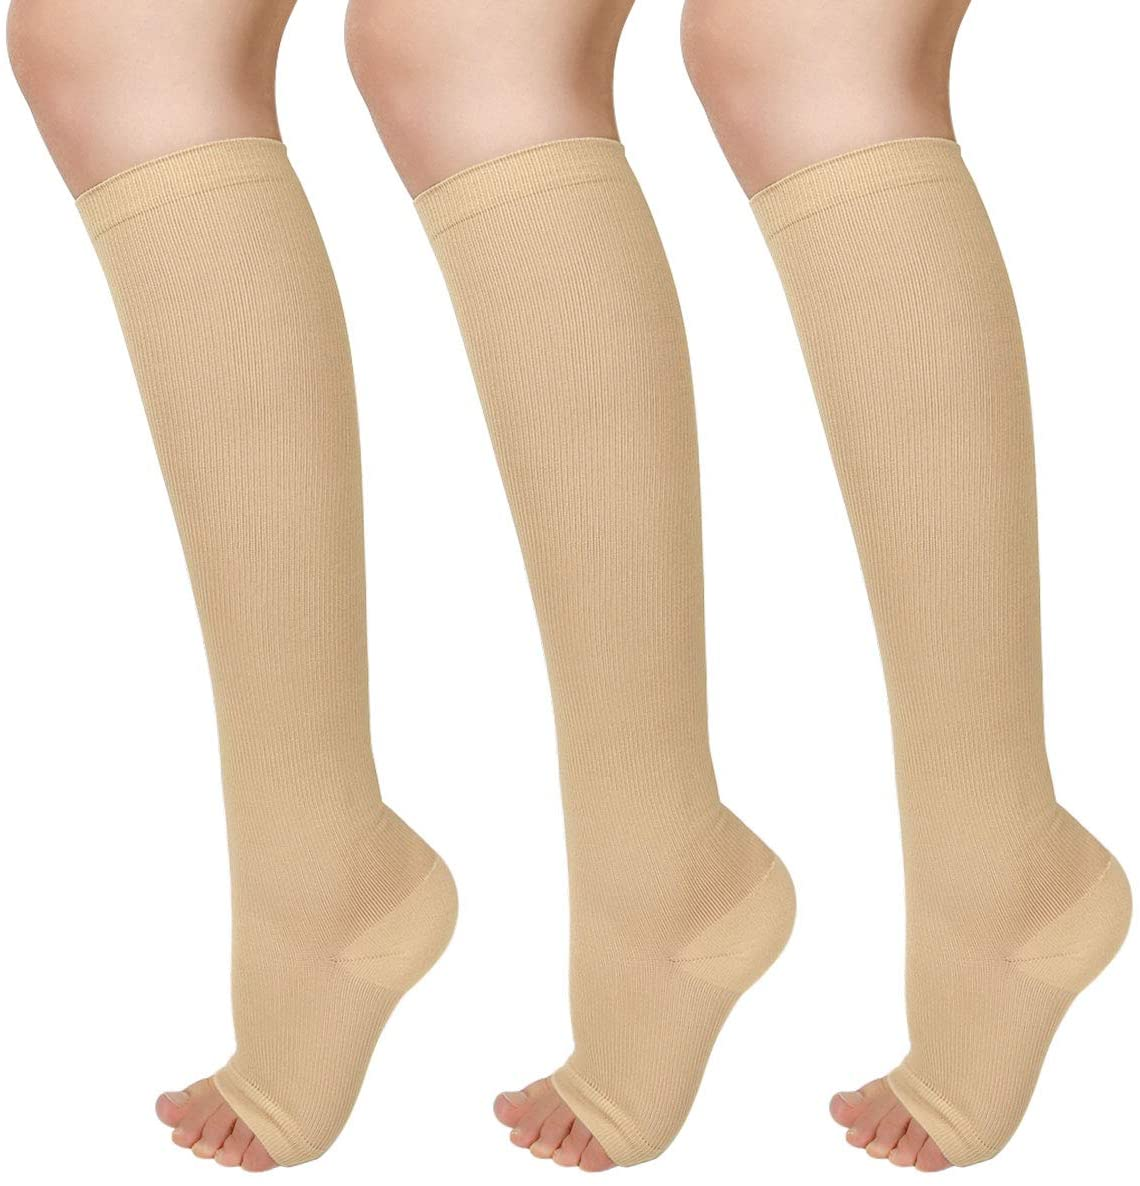 3 Charlotte Mall Pairs Open Toe Compression Socks Women Quality inspection Knee Toeless High 15-25